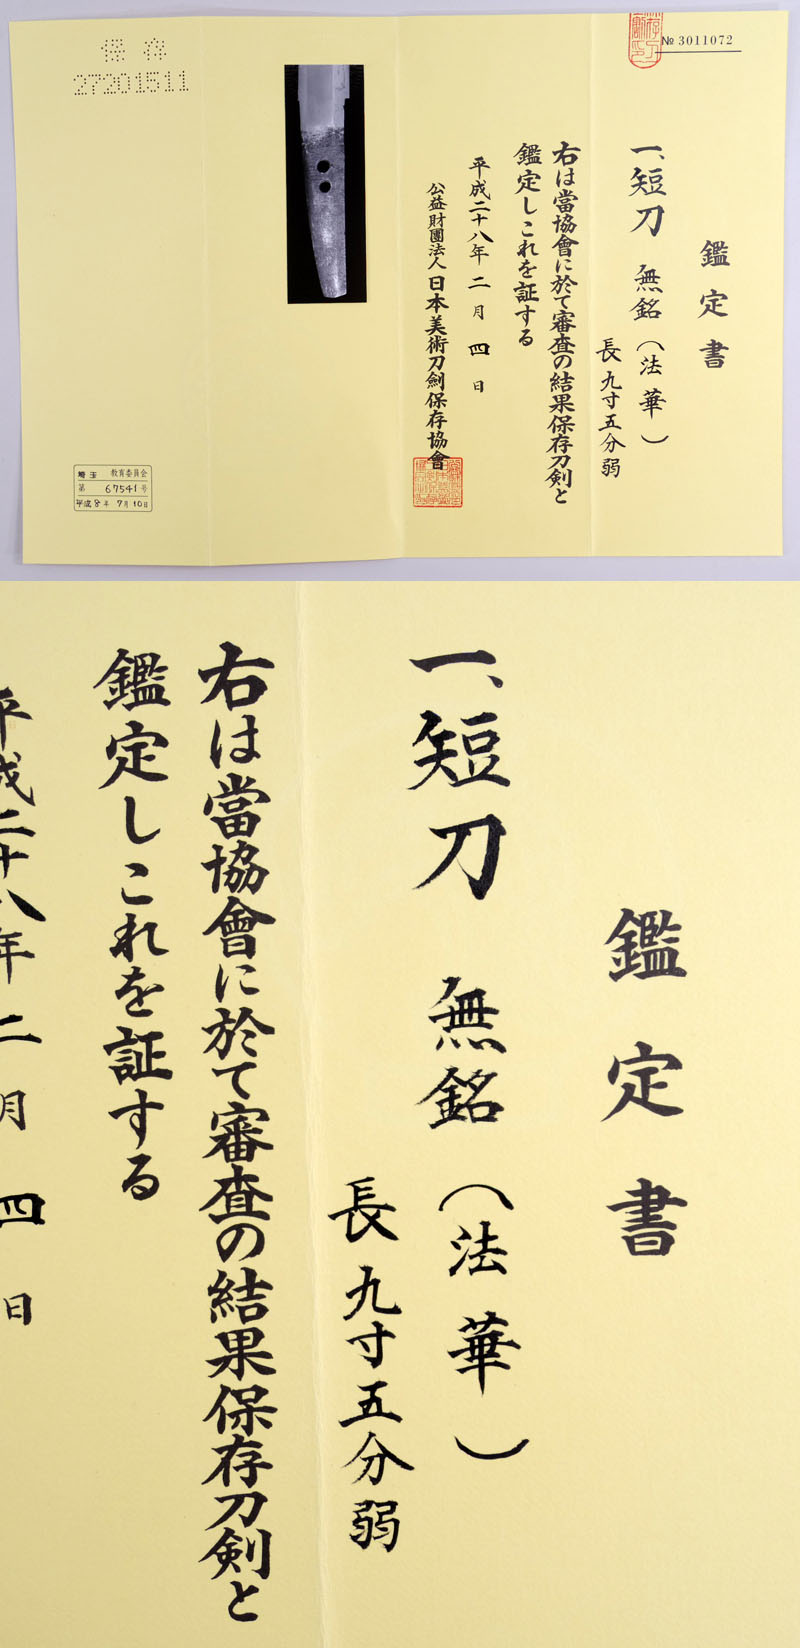 無銘(法華) Picture of Certificate